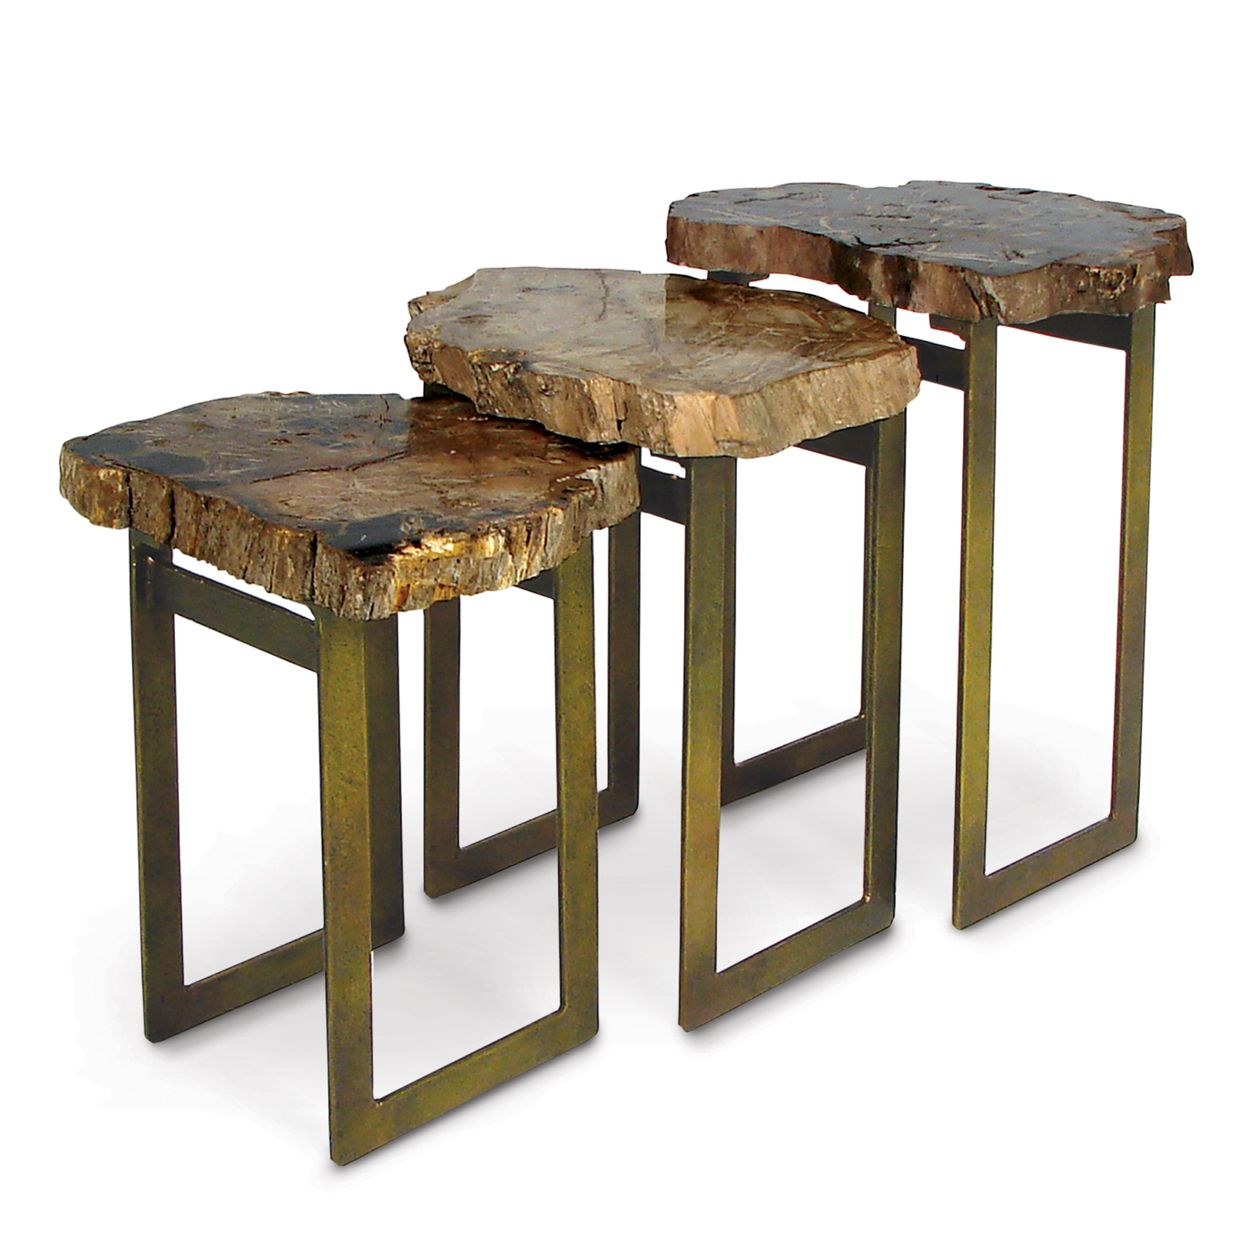 Natural elements artistic 24 tall petrified wood side table unique limited production item limited stock